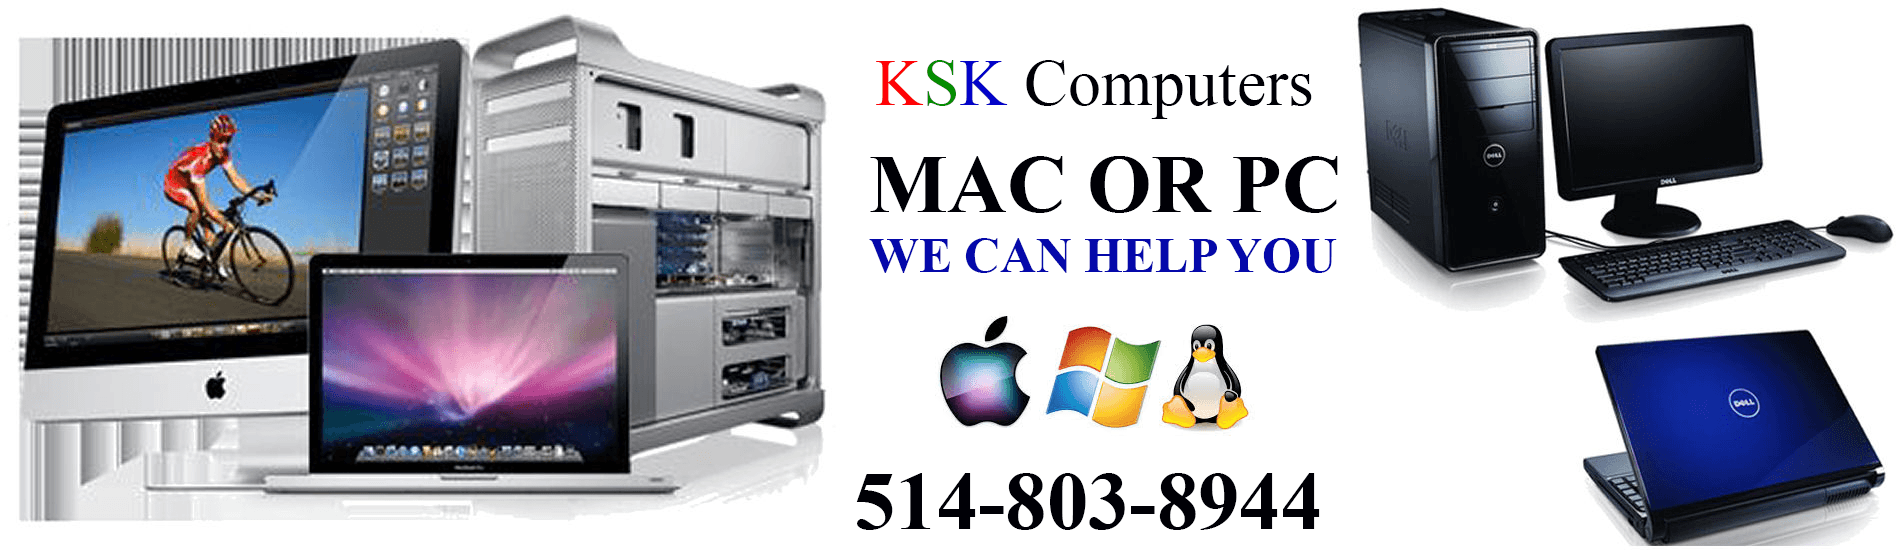 Mac PC Support